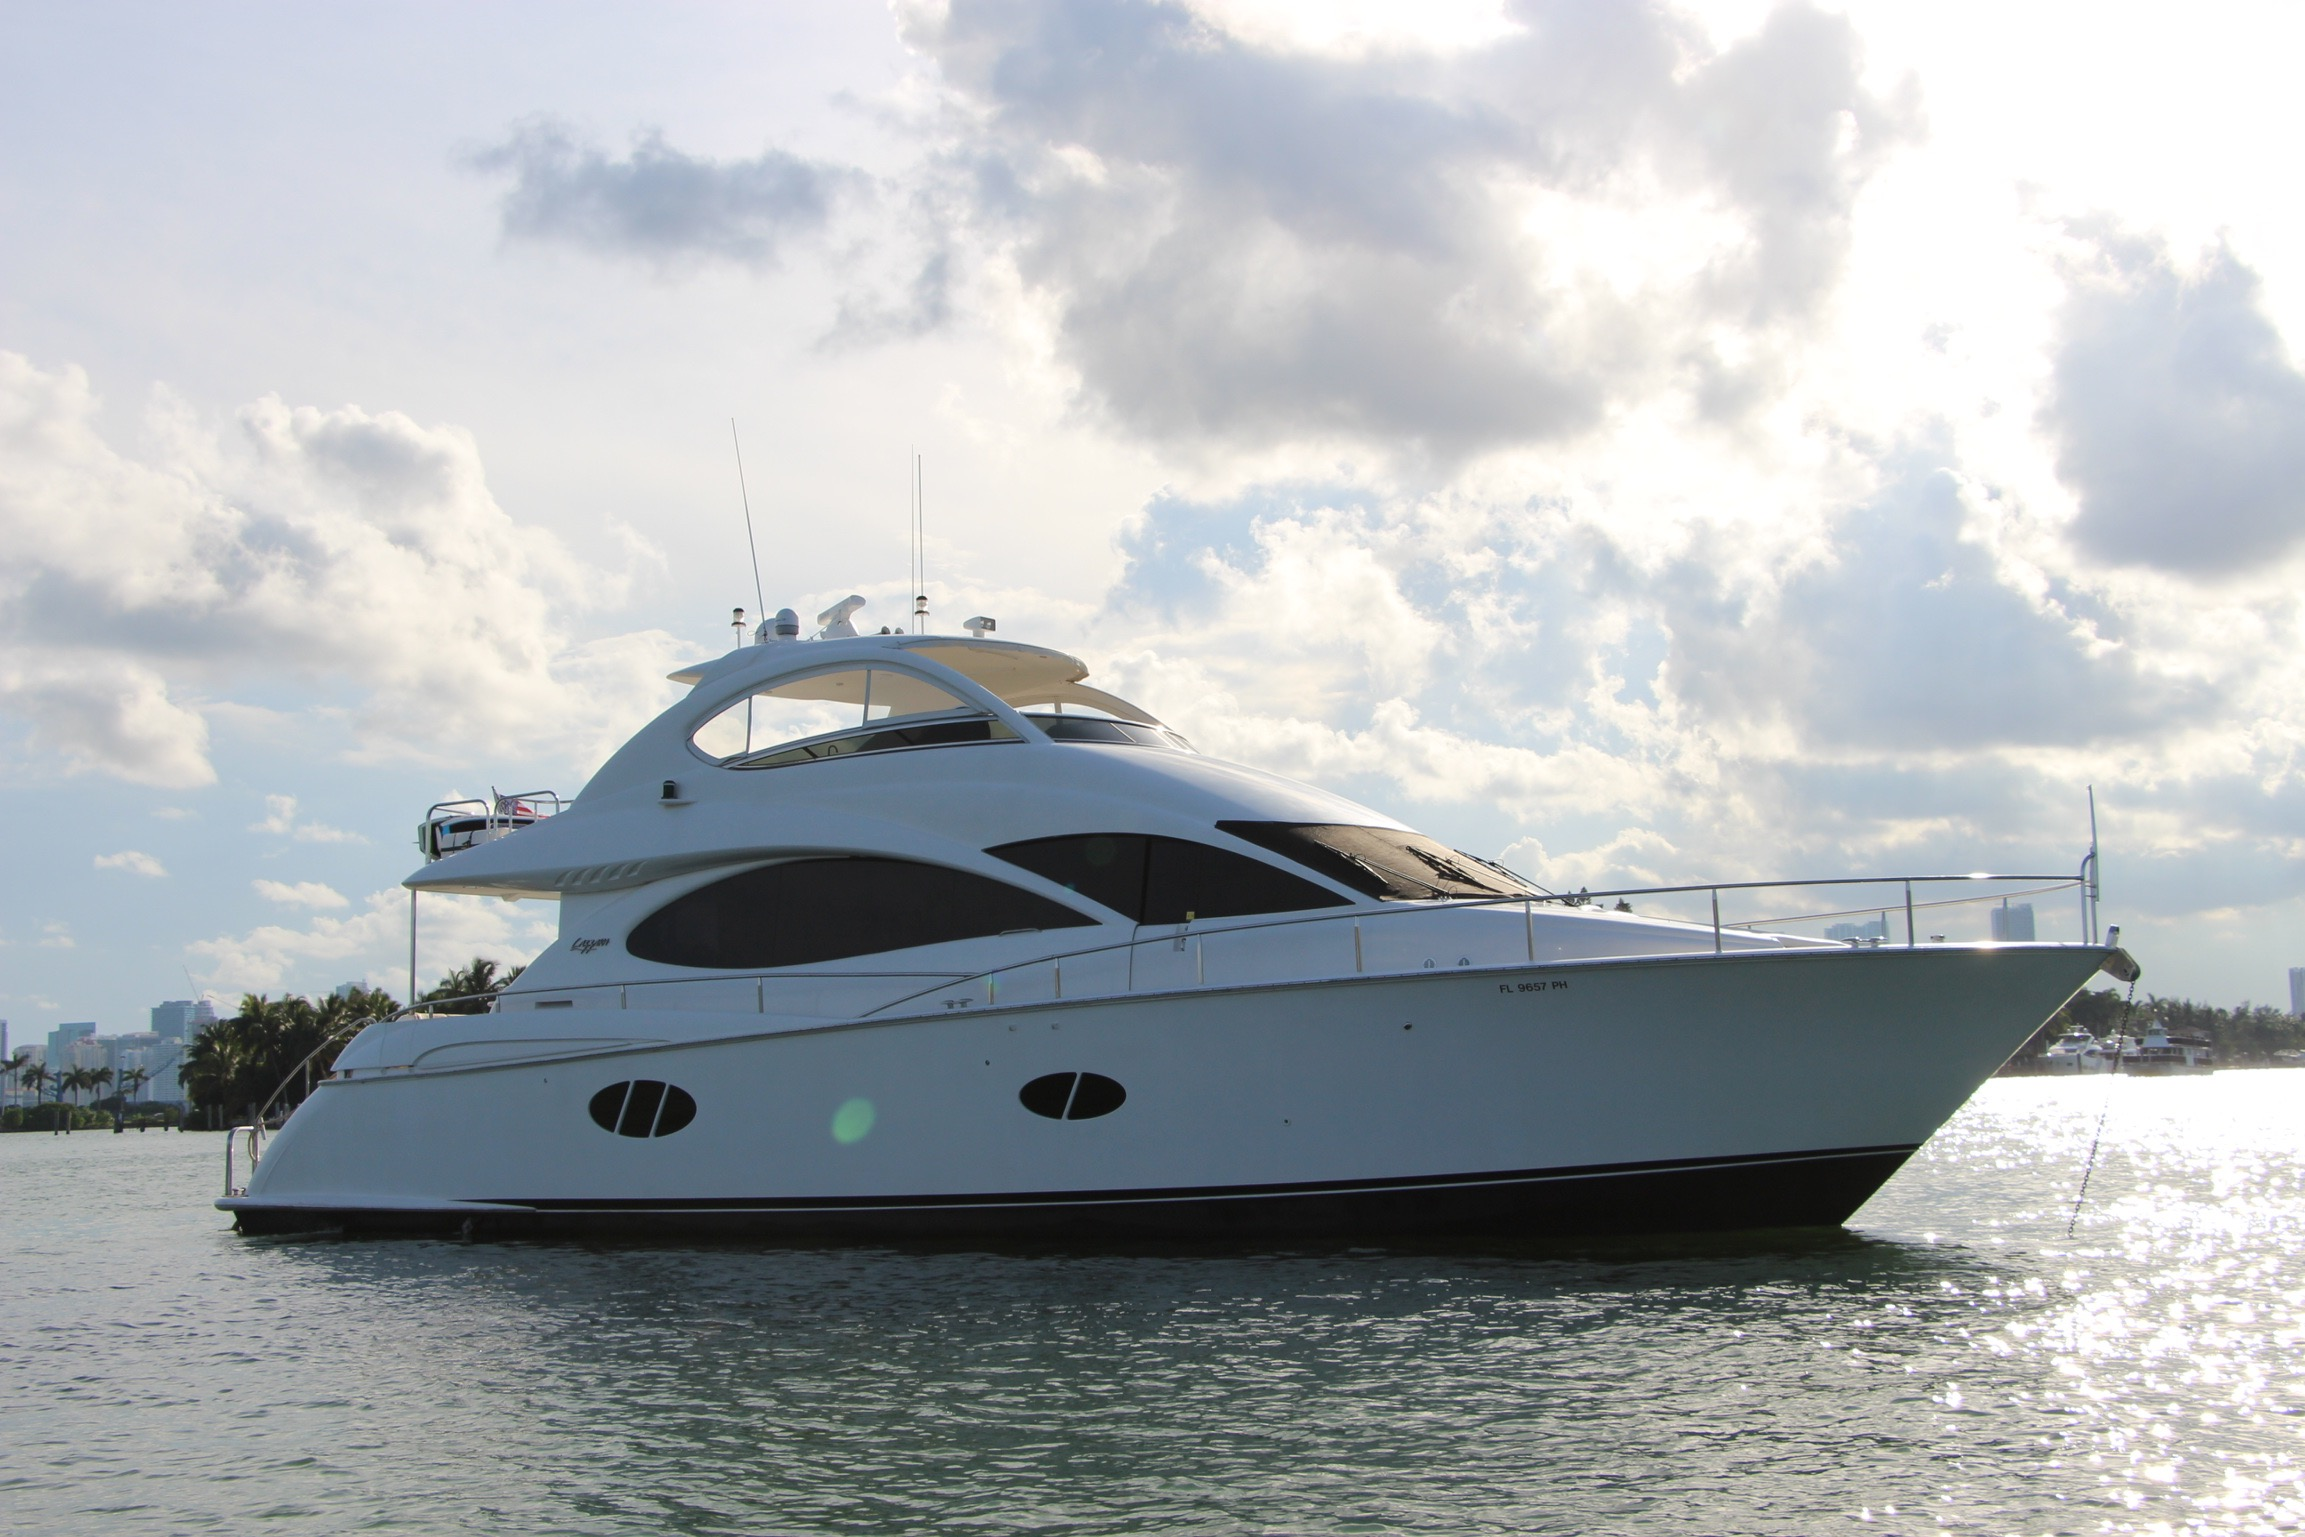 The Victoria for Sale or Charter